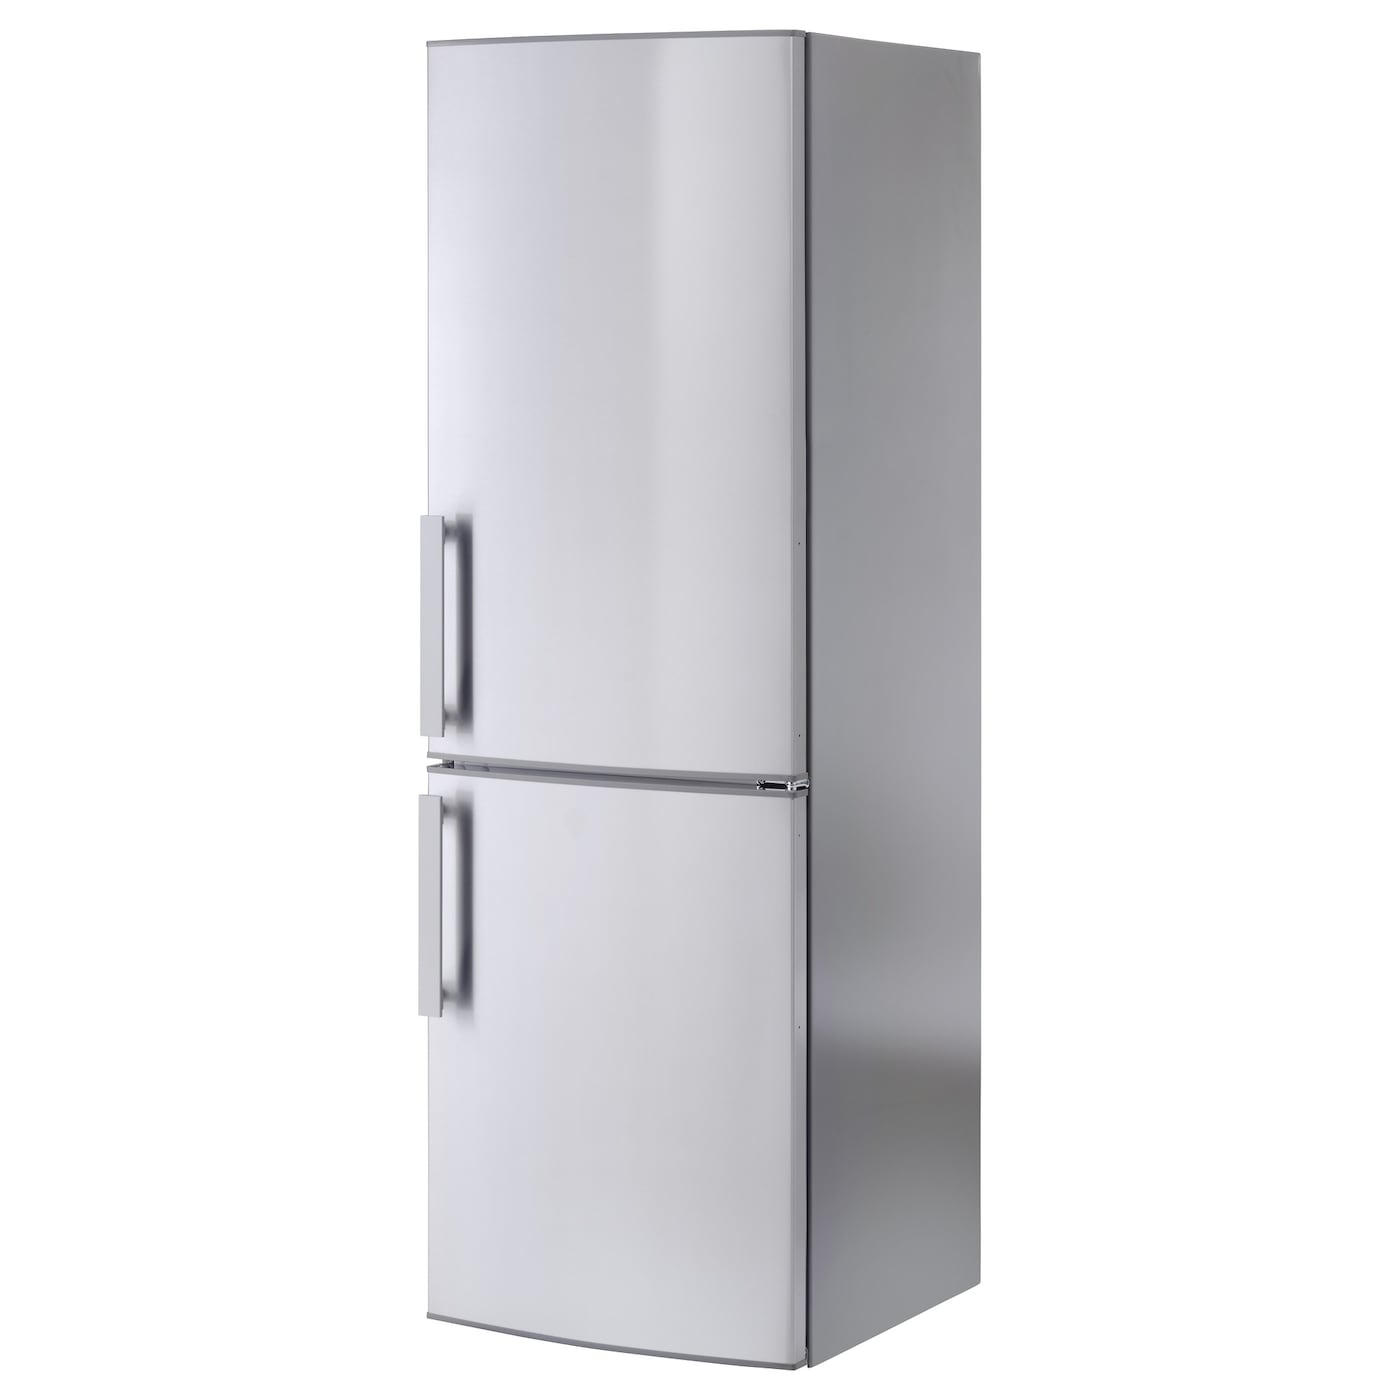 kylig fridge freezer a no frost stainless steel 220 91 l. Black Bedroom Furniture Sets. Home Design Ideas